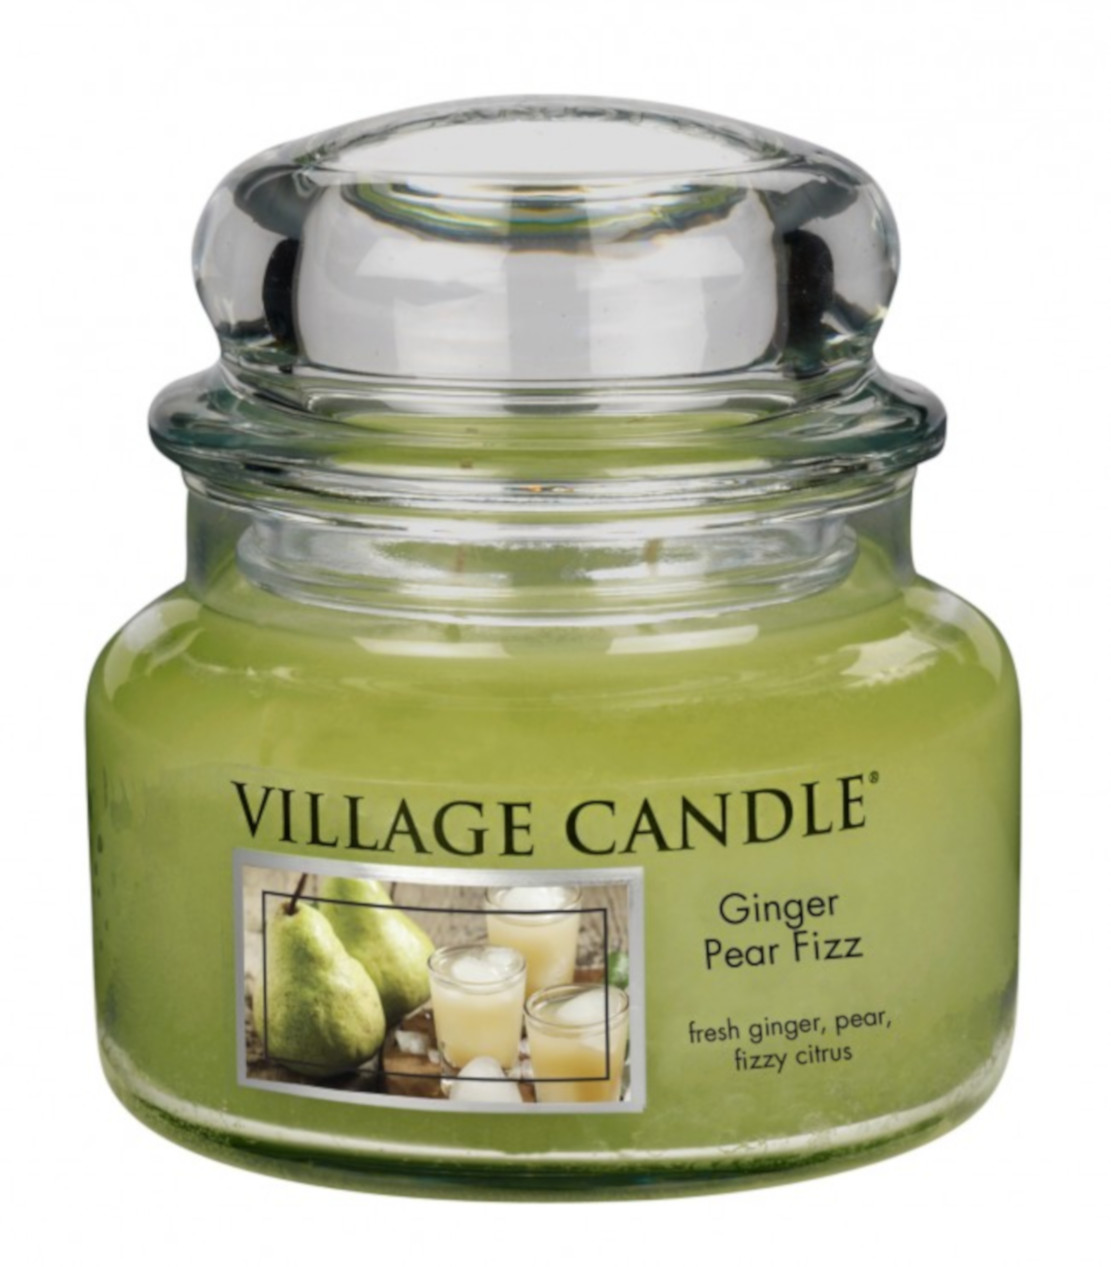 Village Ginger Pear Fizz 11oz Small Jar Candle